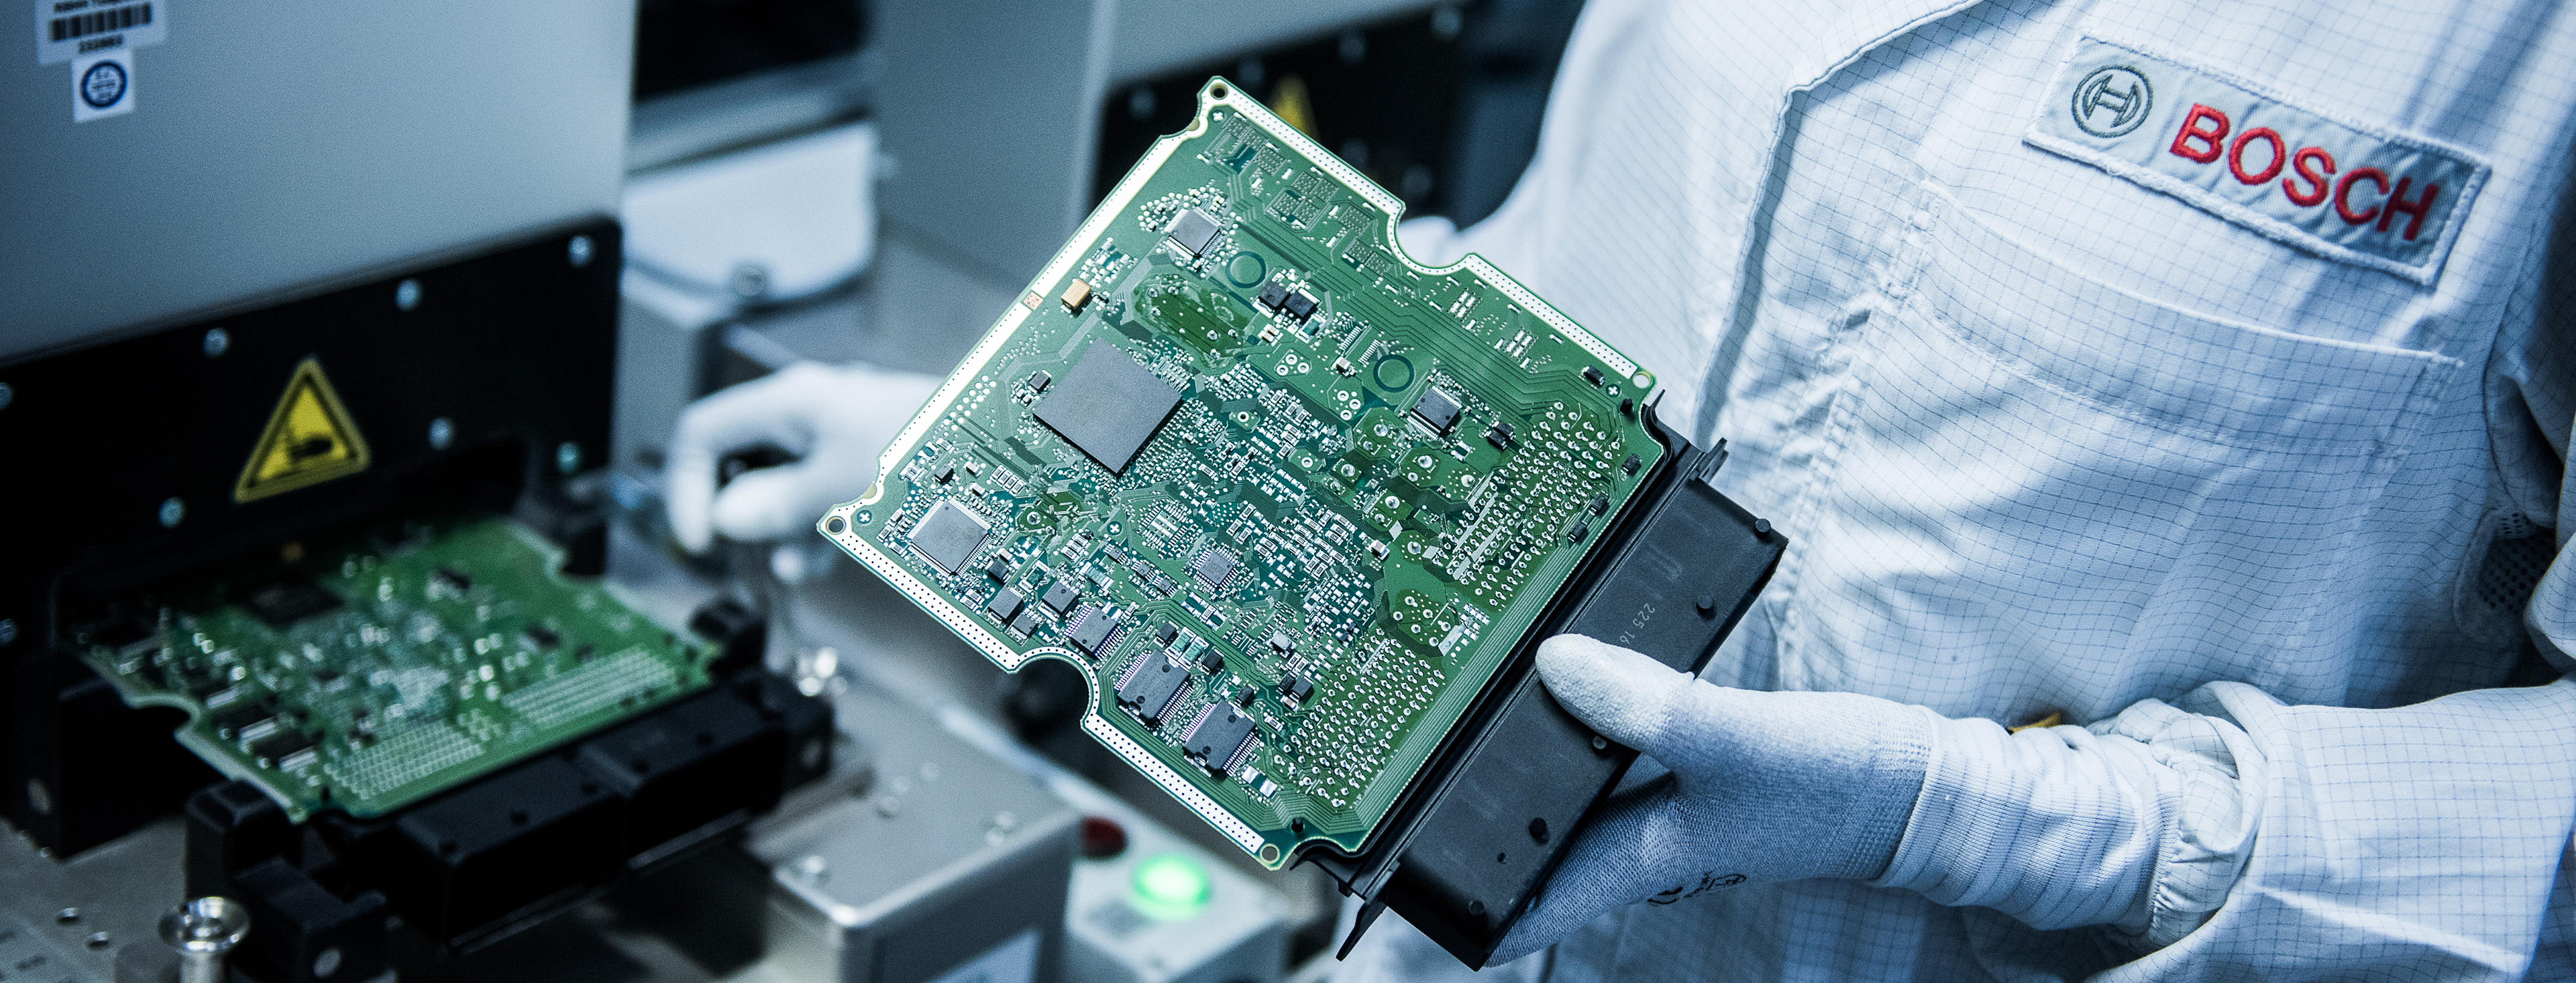 Automobile Electronic Component Manufacture Inside Robert Bosch GmbH Plant